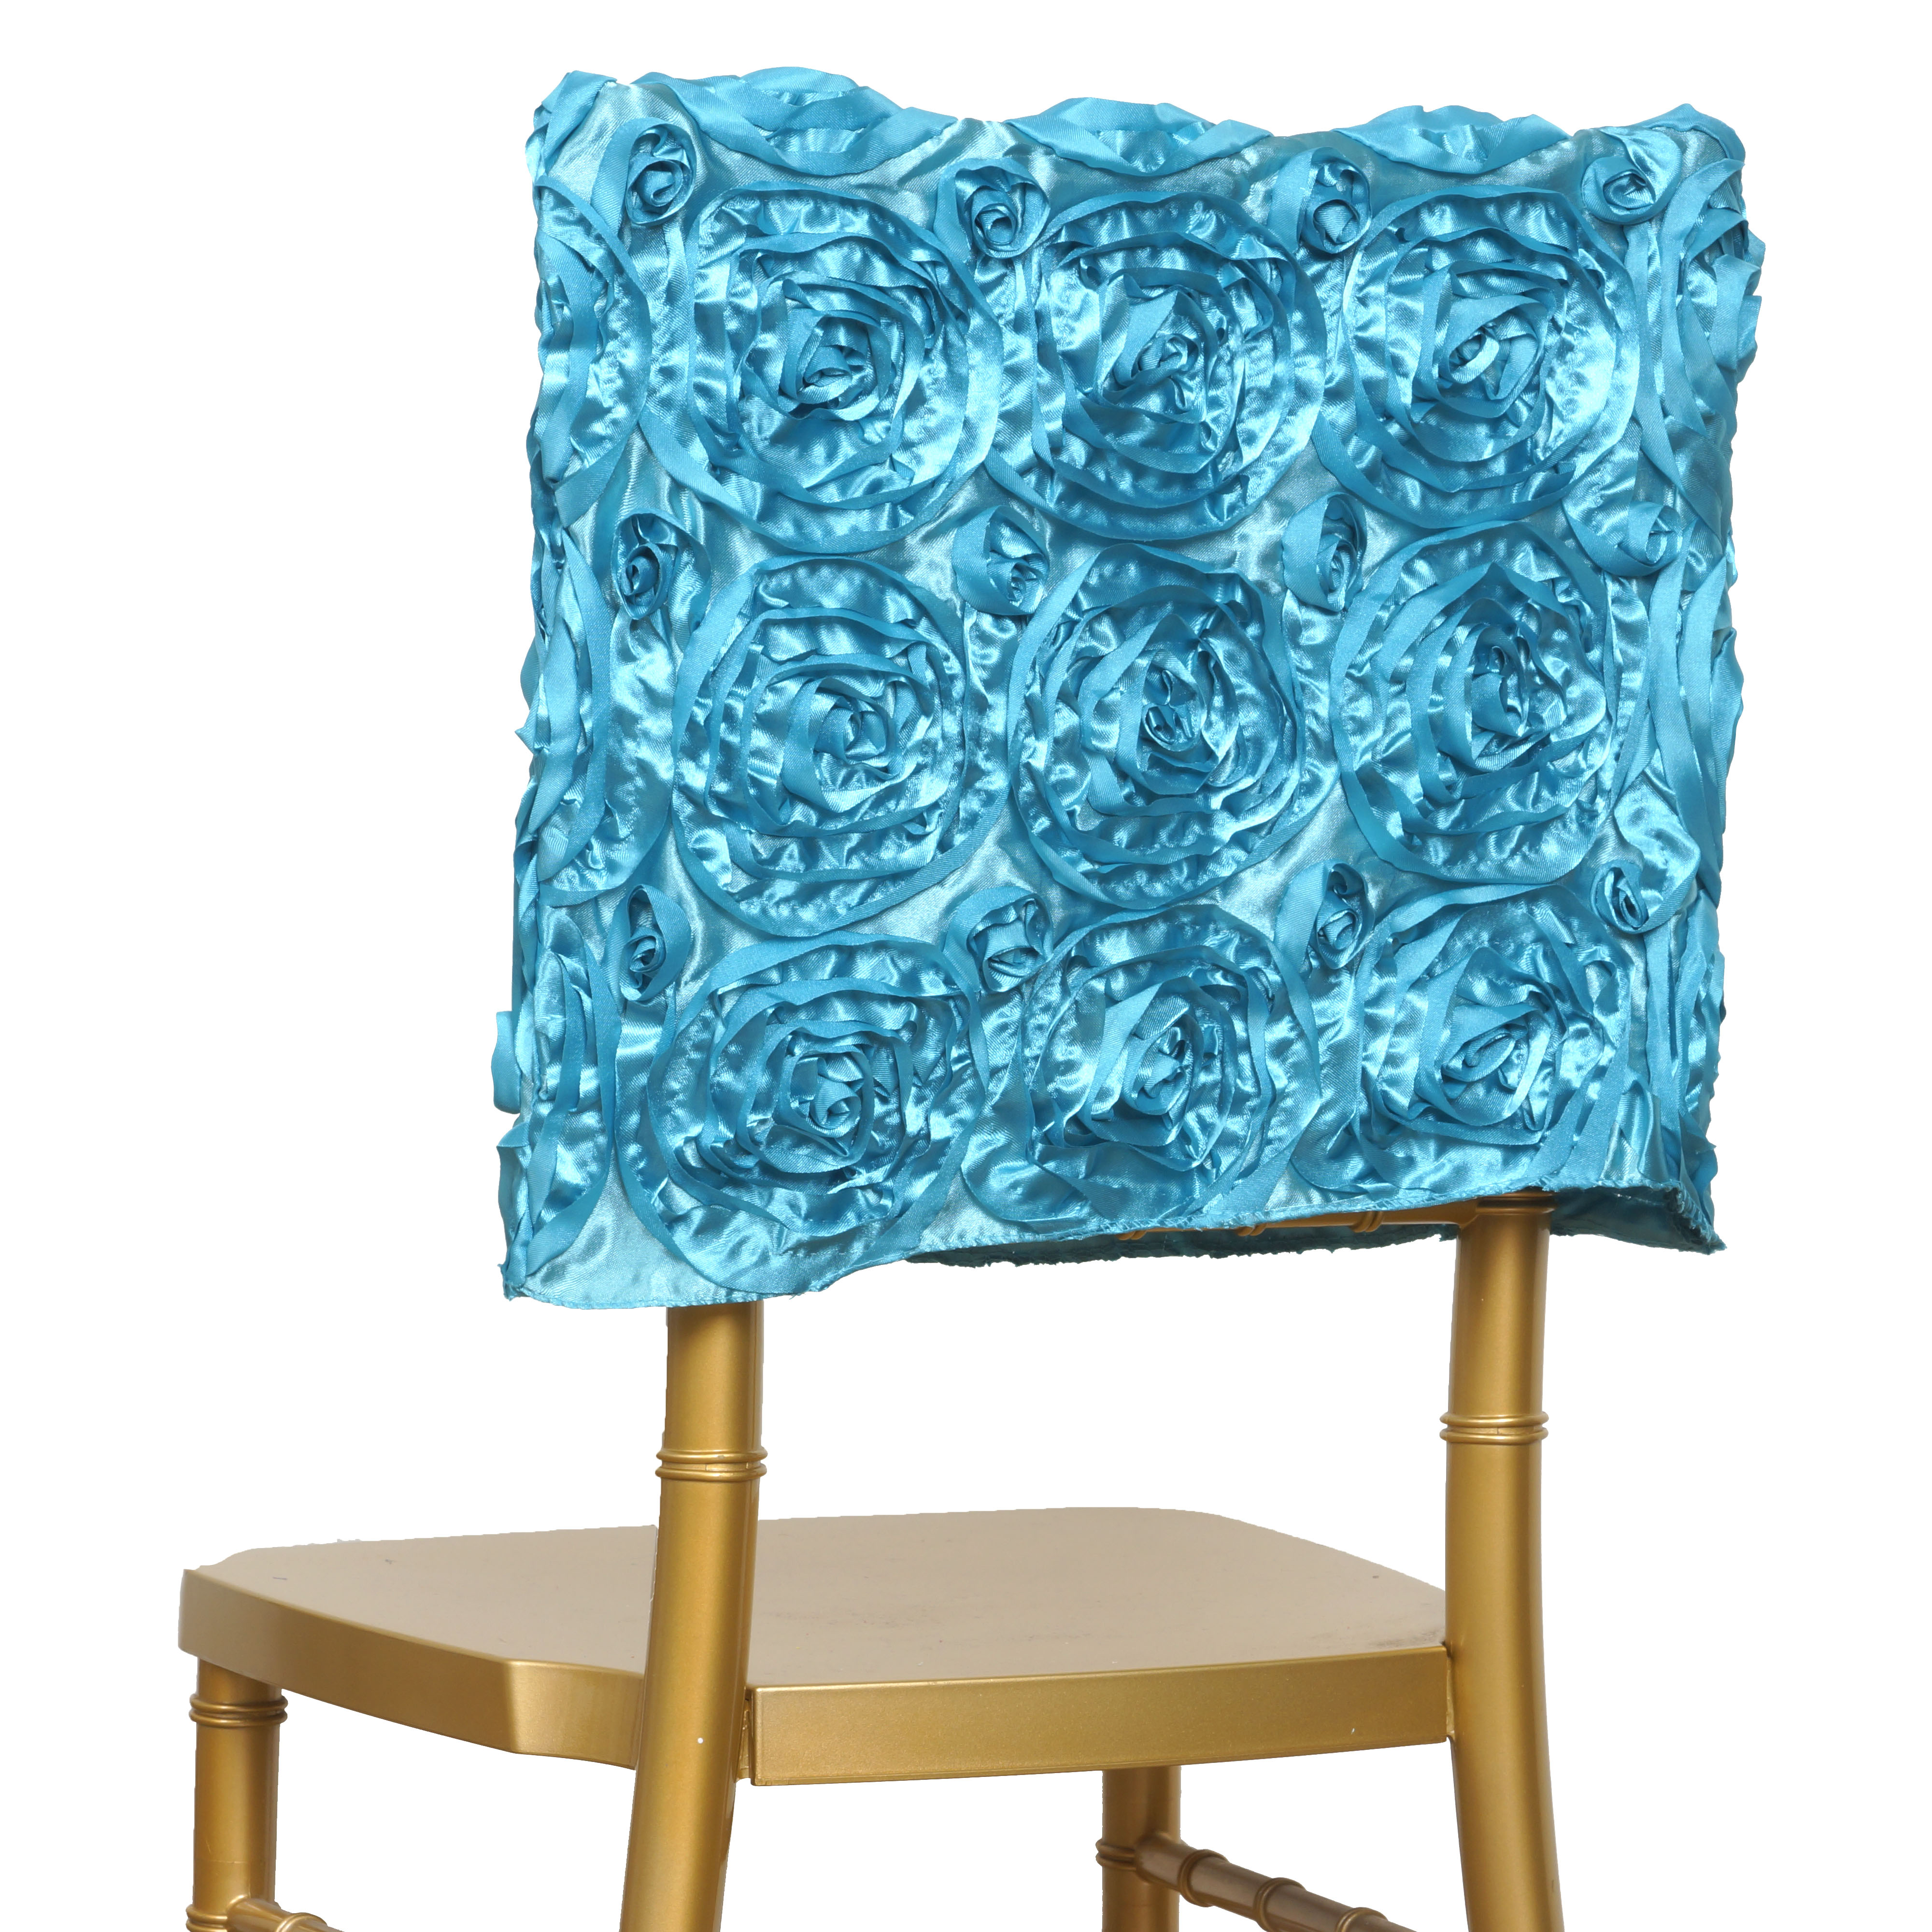 Stupendous Details About Turquoise Chair Cover Square Top Cap Party Wedding Reception Decorations Sale Creativecarmelina Interior Chair Design Creativecarmelinacom